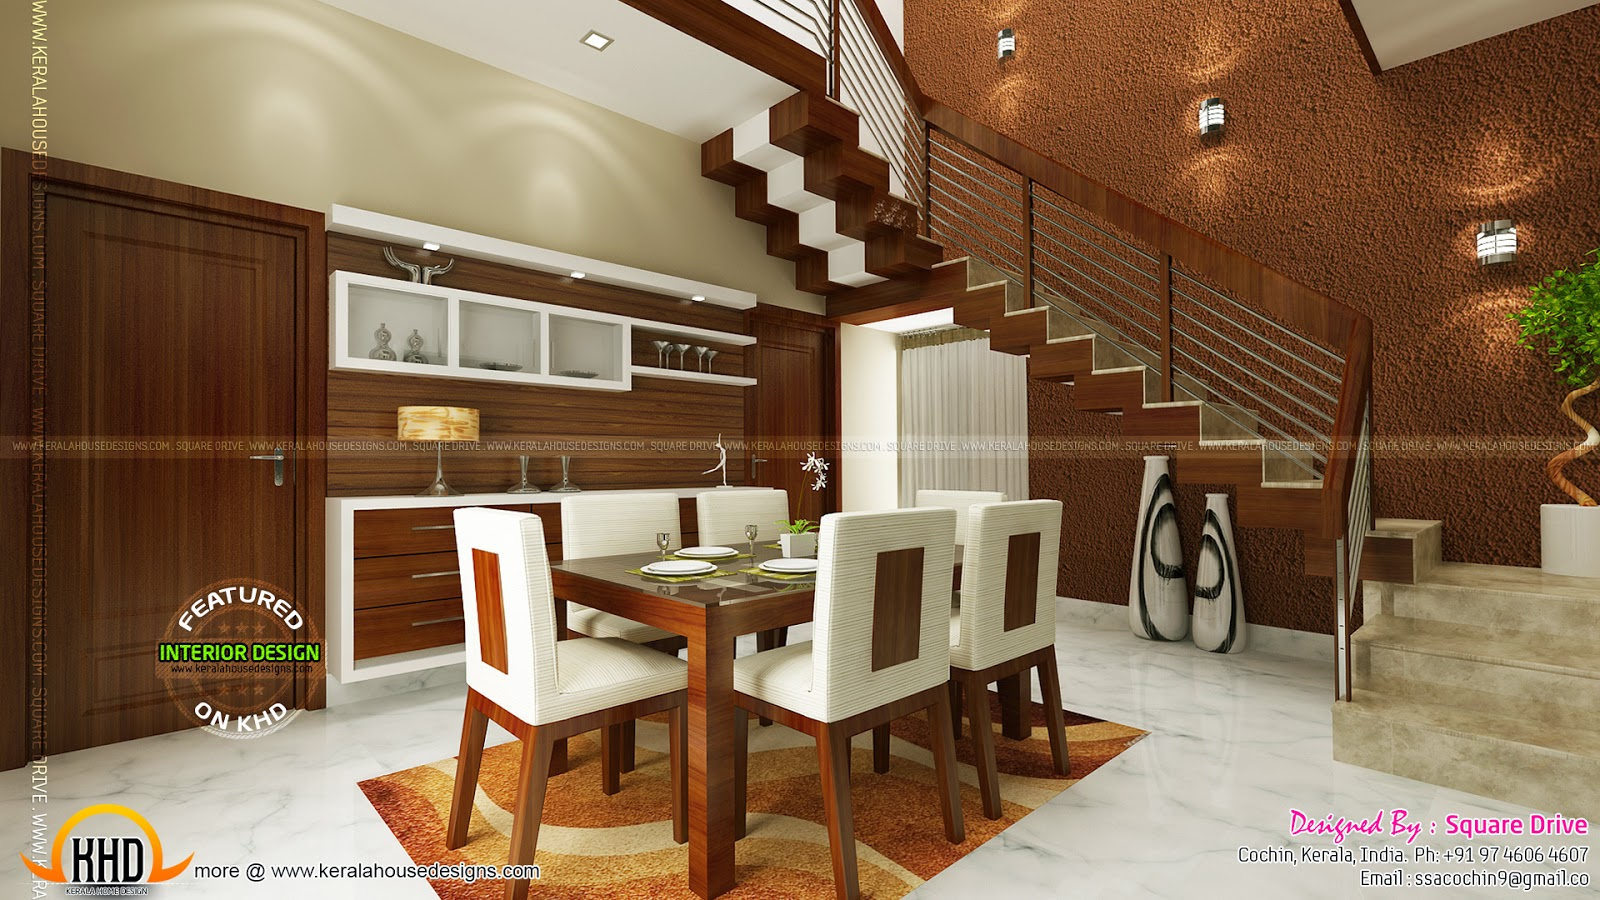 Cochin interior design kerala home design and floor plans for House interior design photos